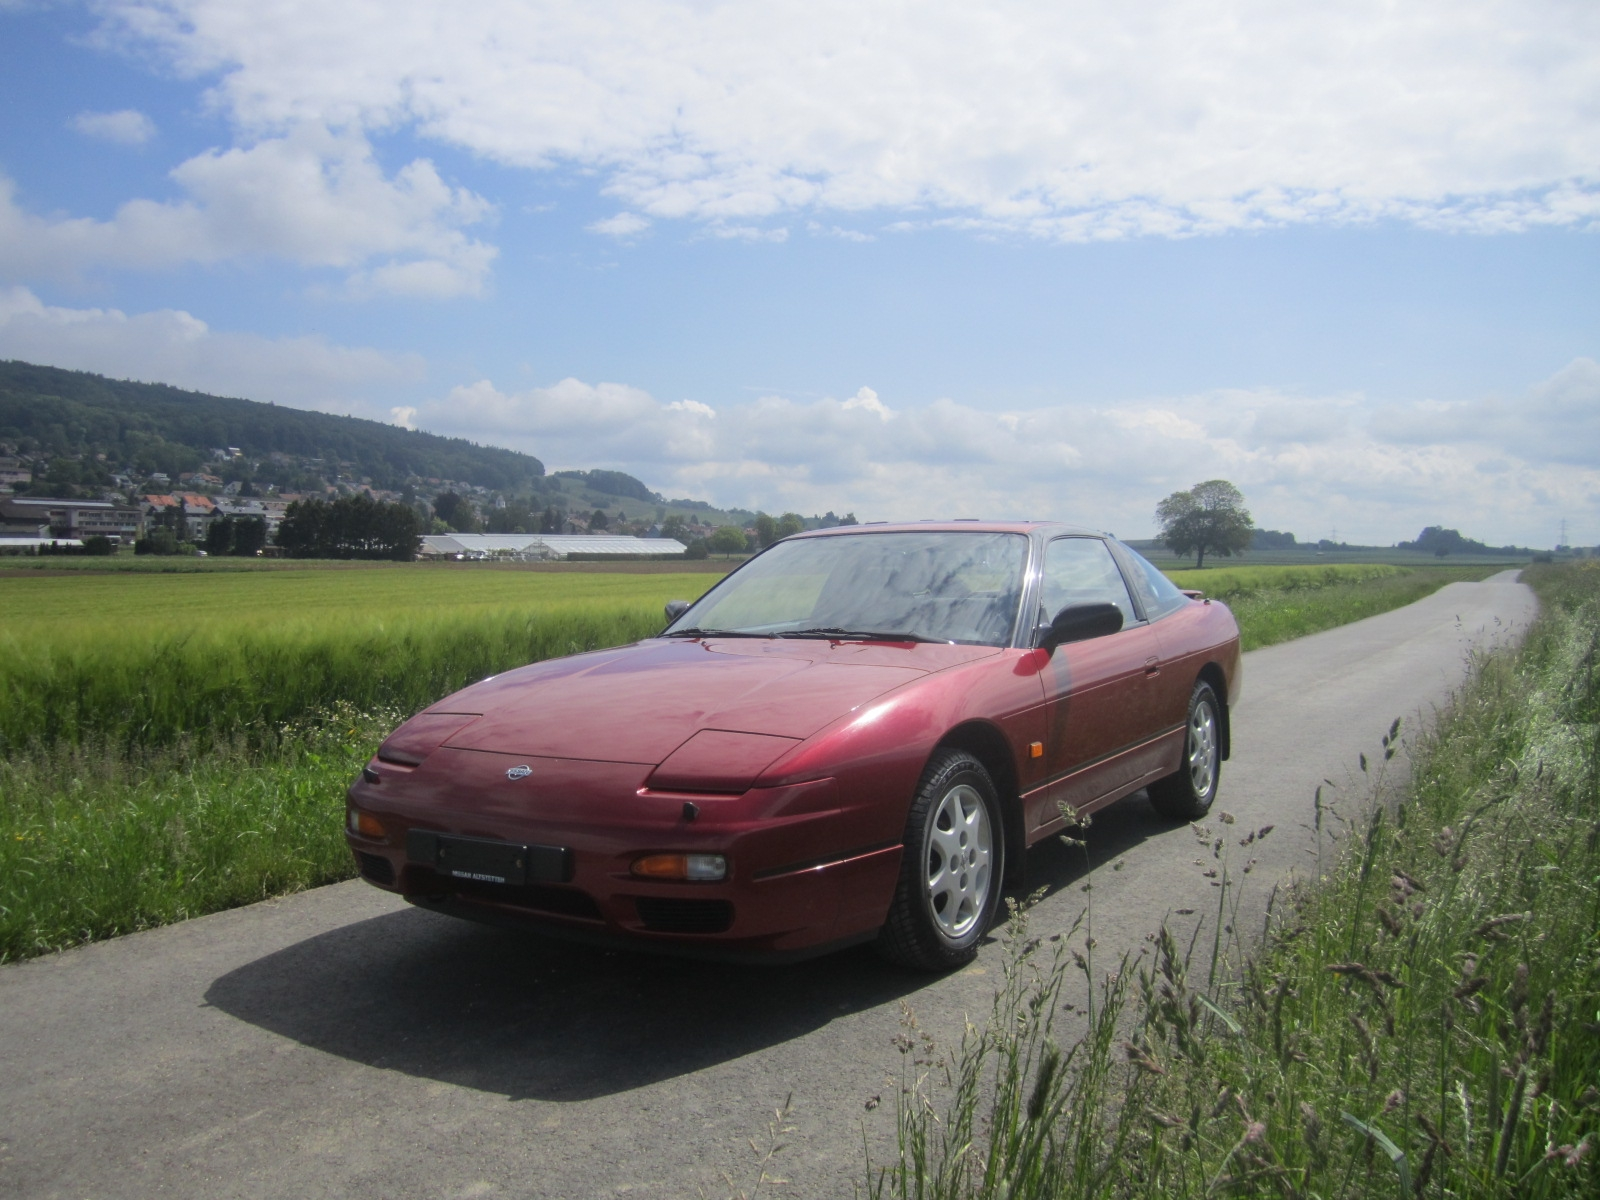 Nissan 200 SX 1.8 16V Turbo Coupé